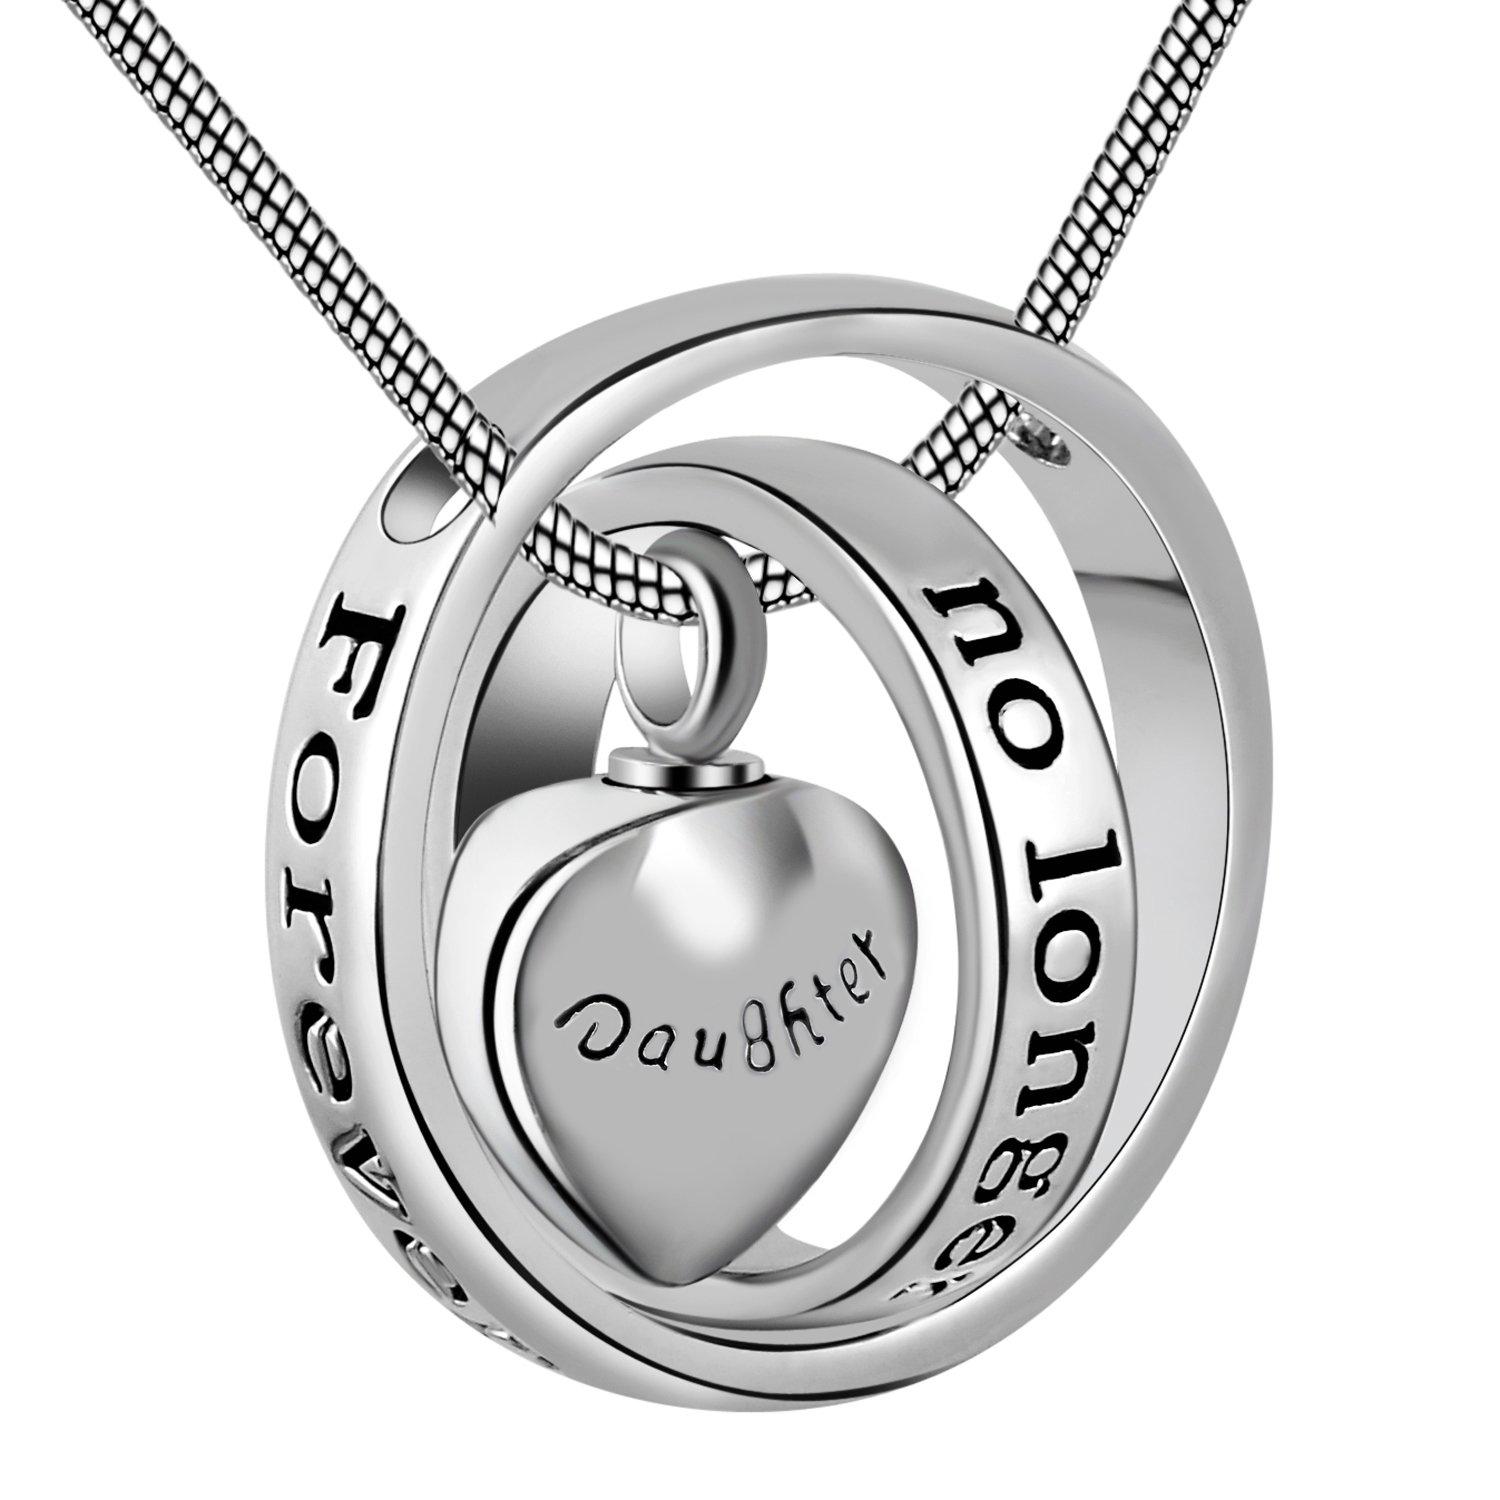 Eternally Loved No longer by my side,forever in my heart carved locket cremation Urn necklace for mom & dad (Daughter) by Eternally Loved (Image #1)